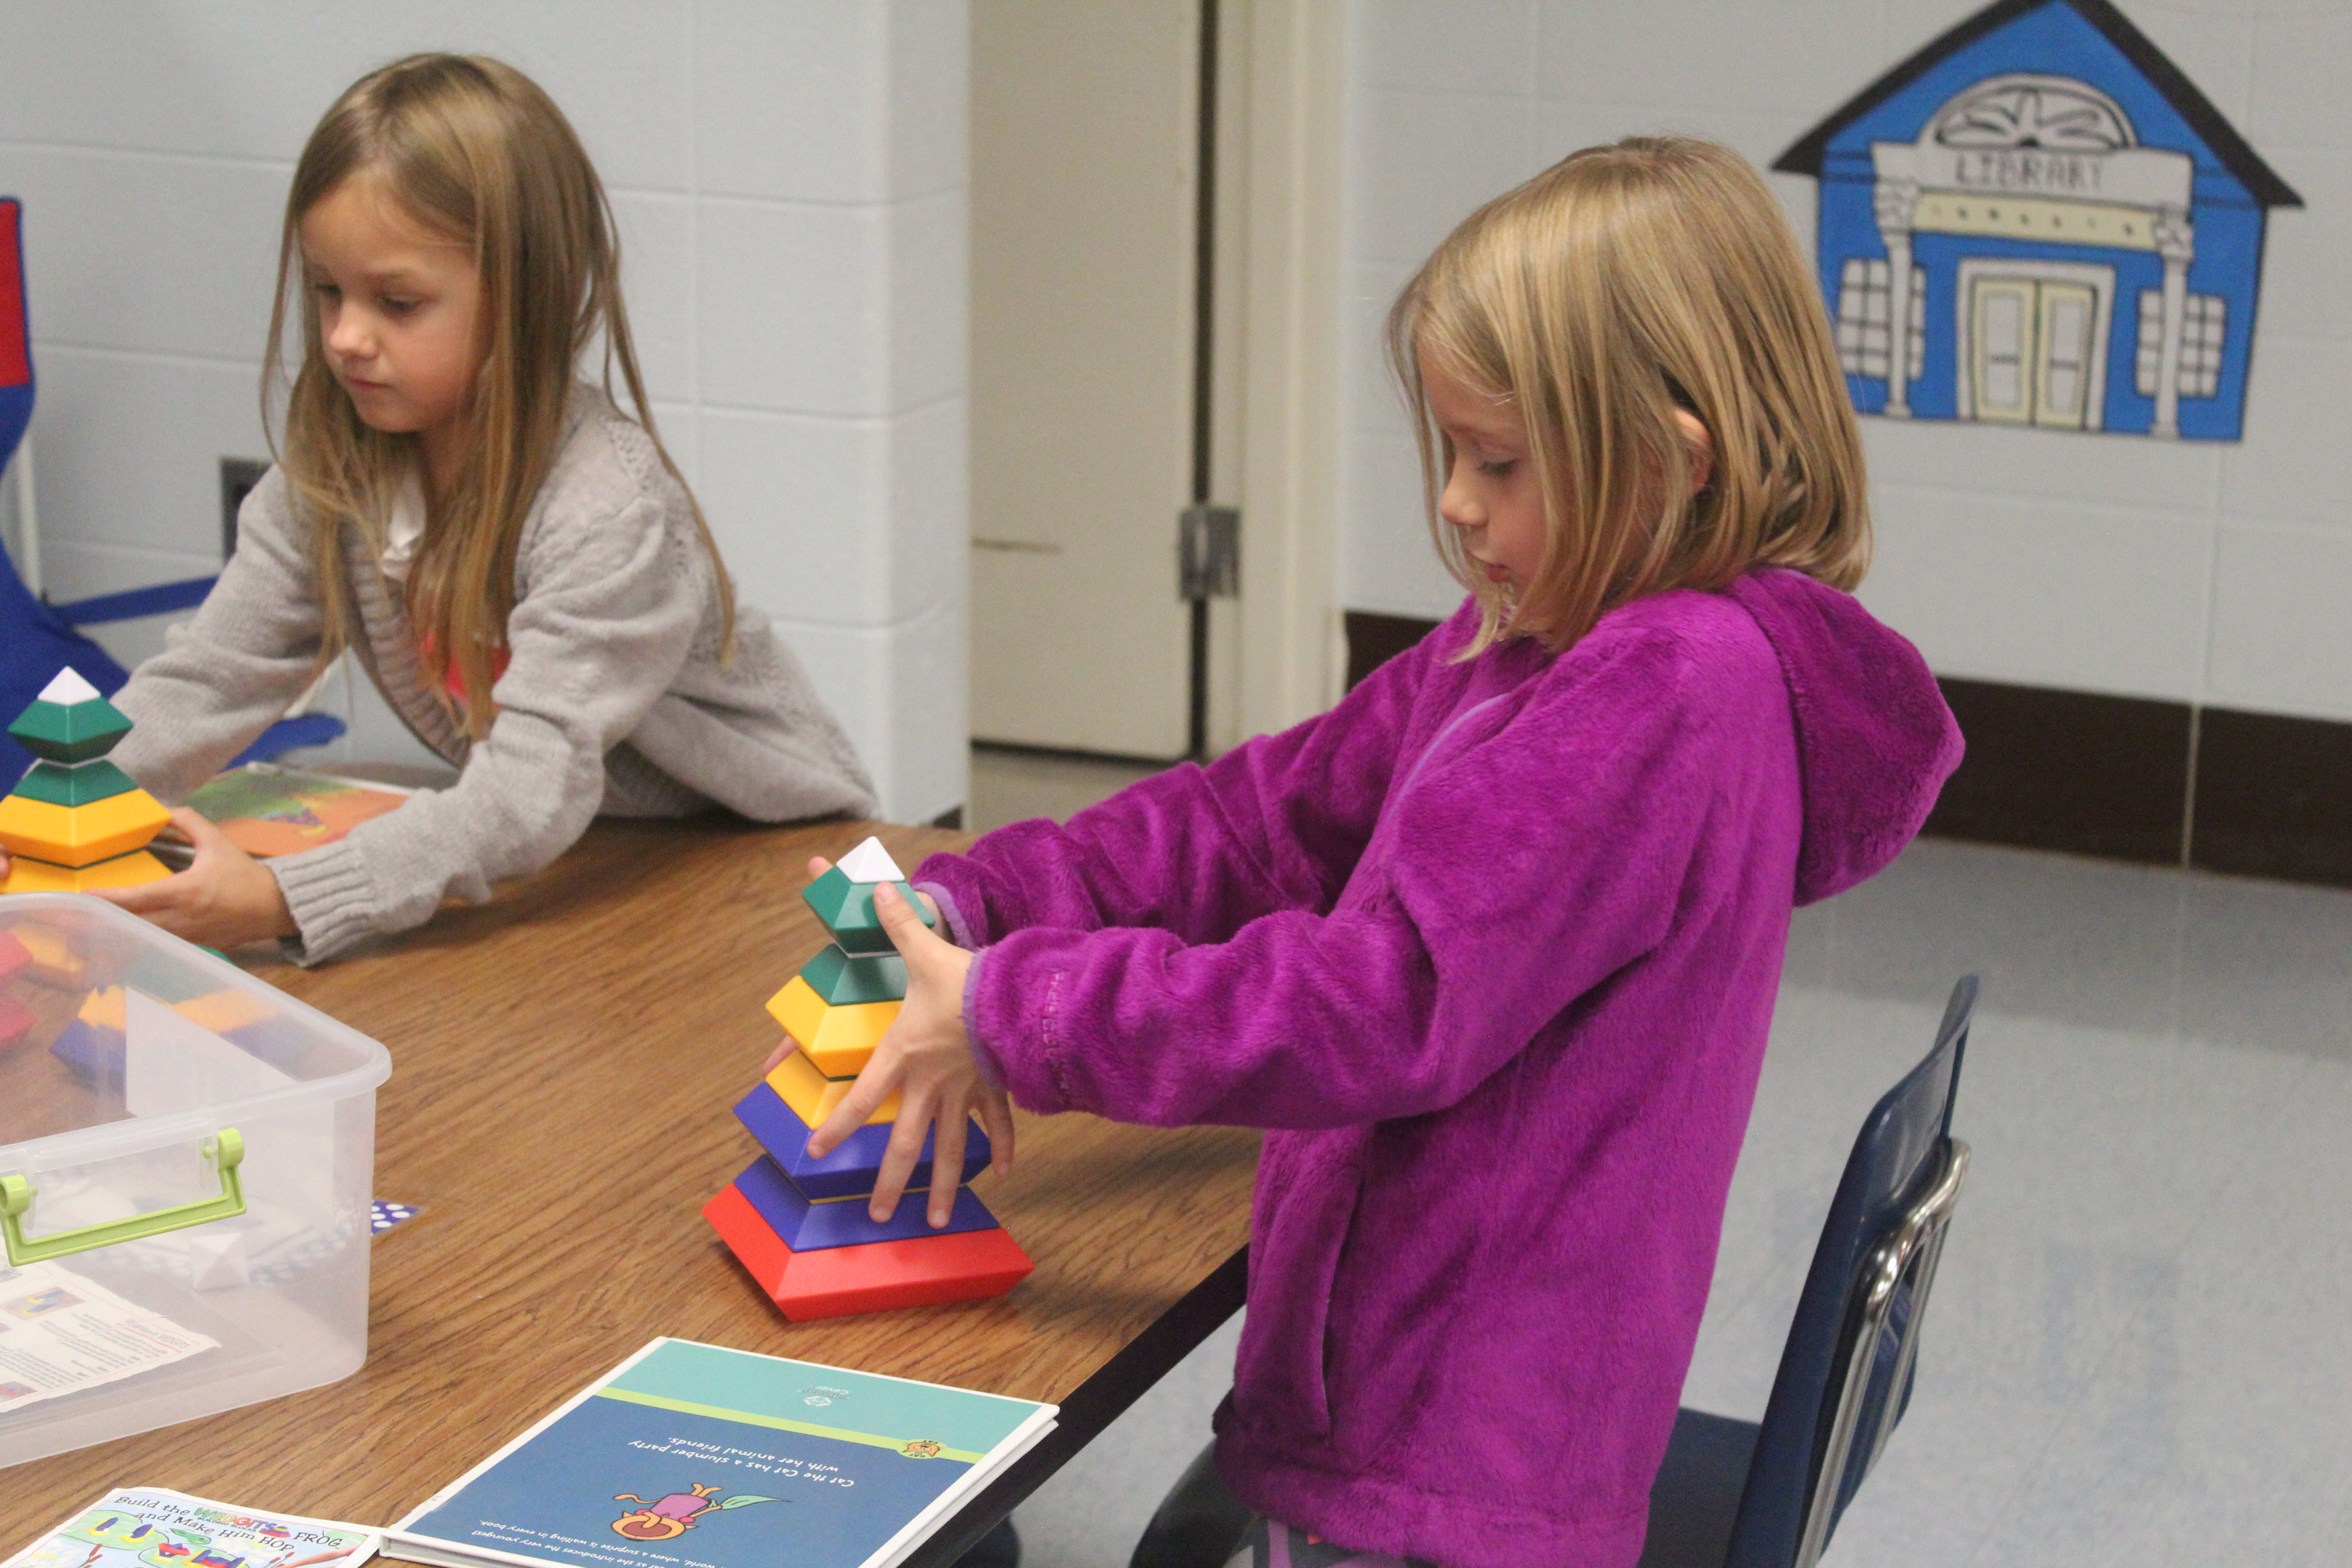 A girl plays with pyramid blocks during her time in the library.